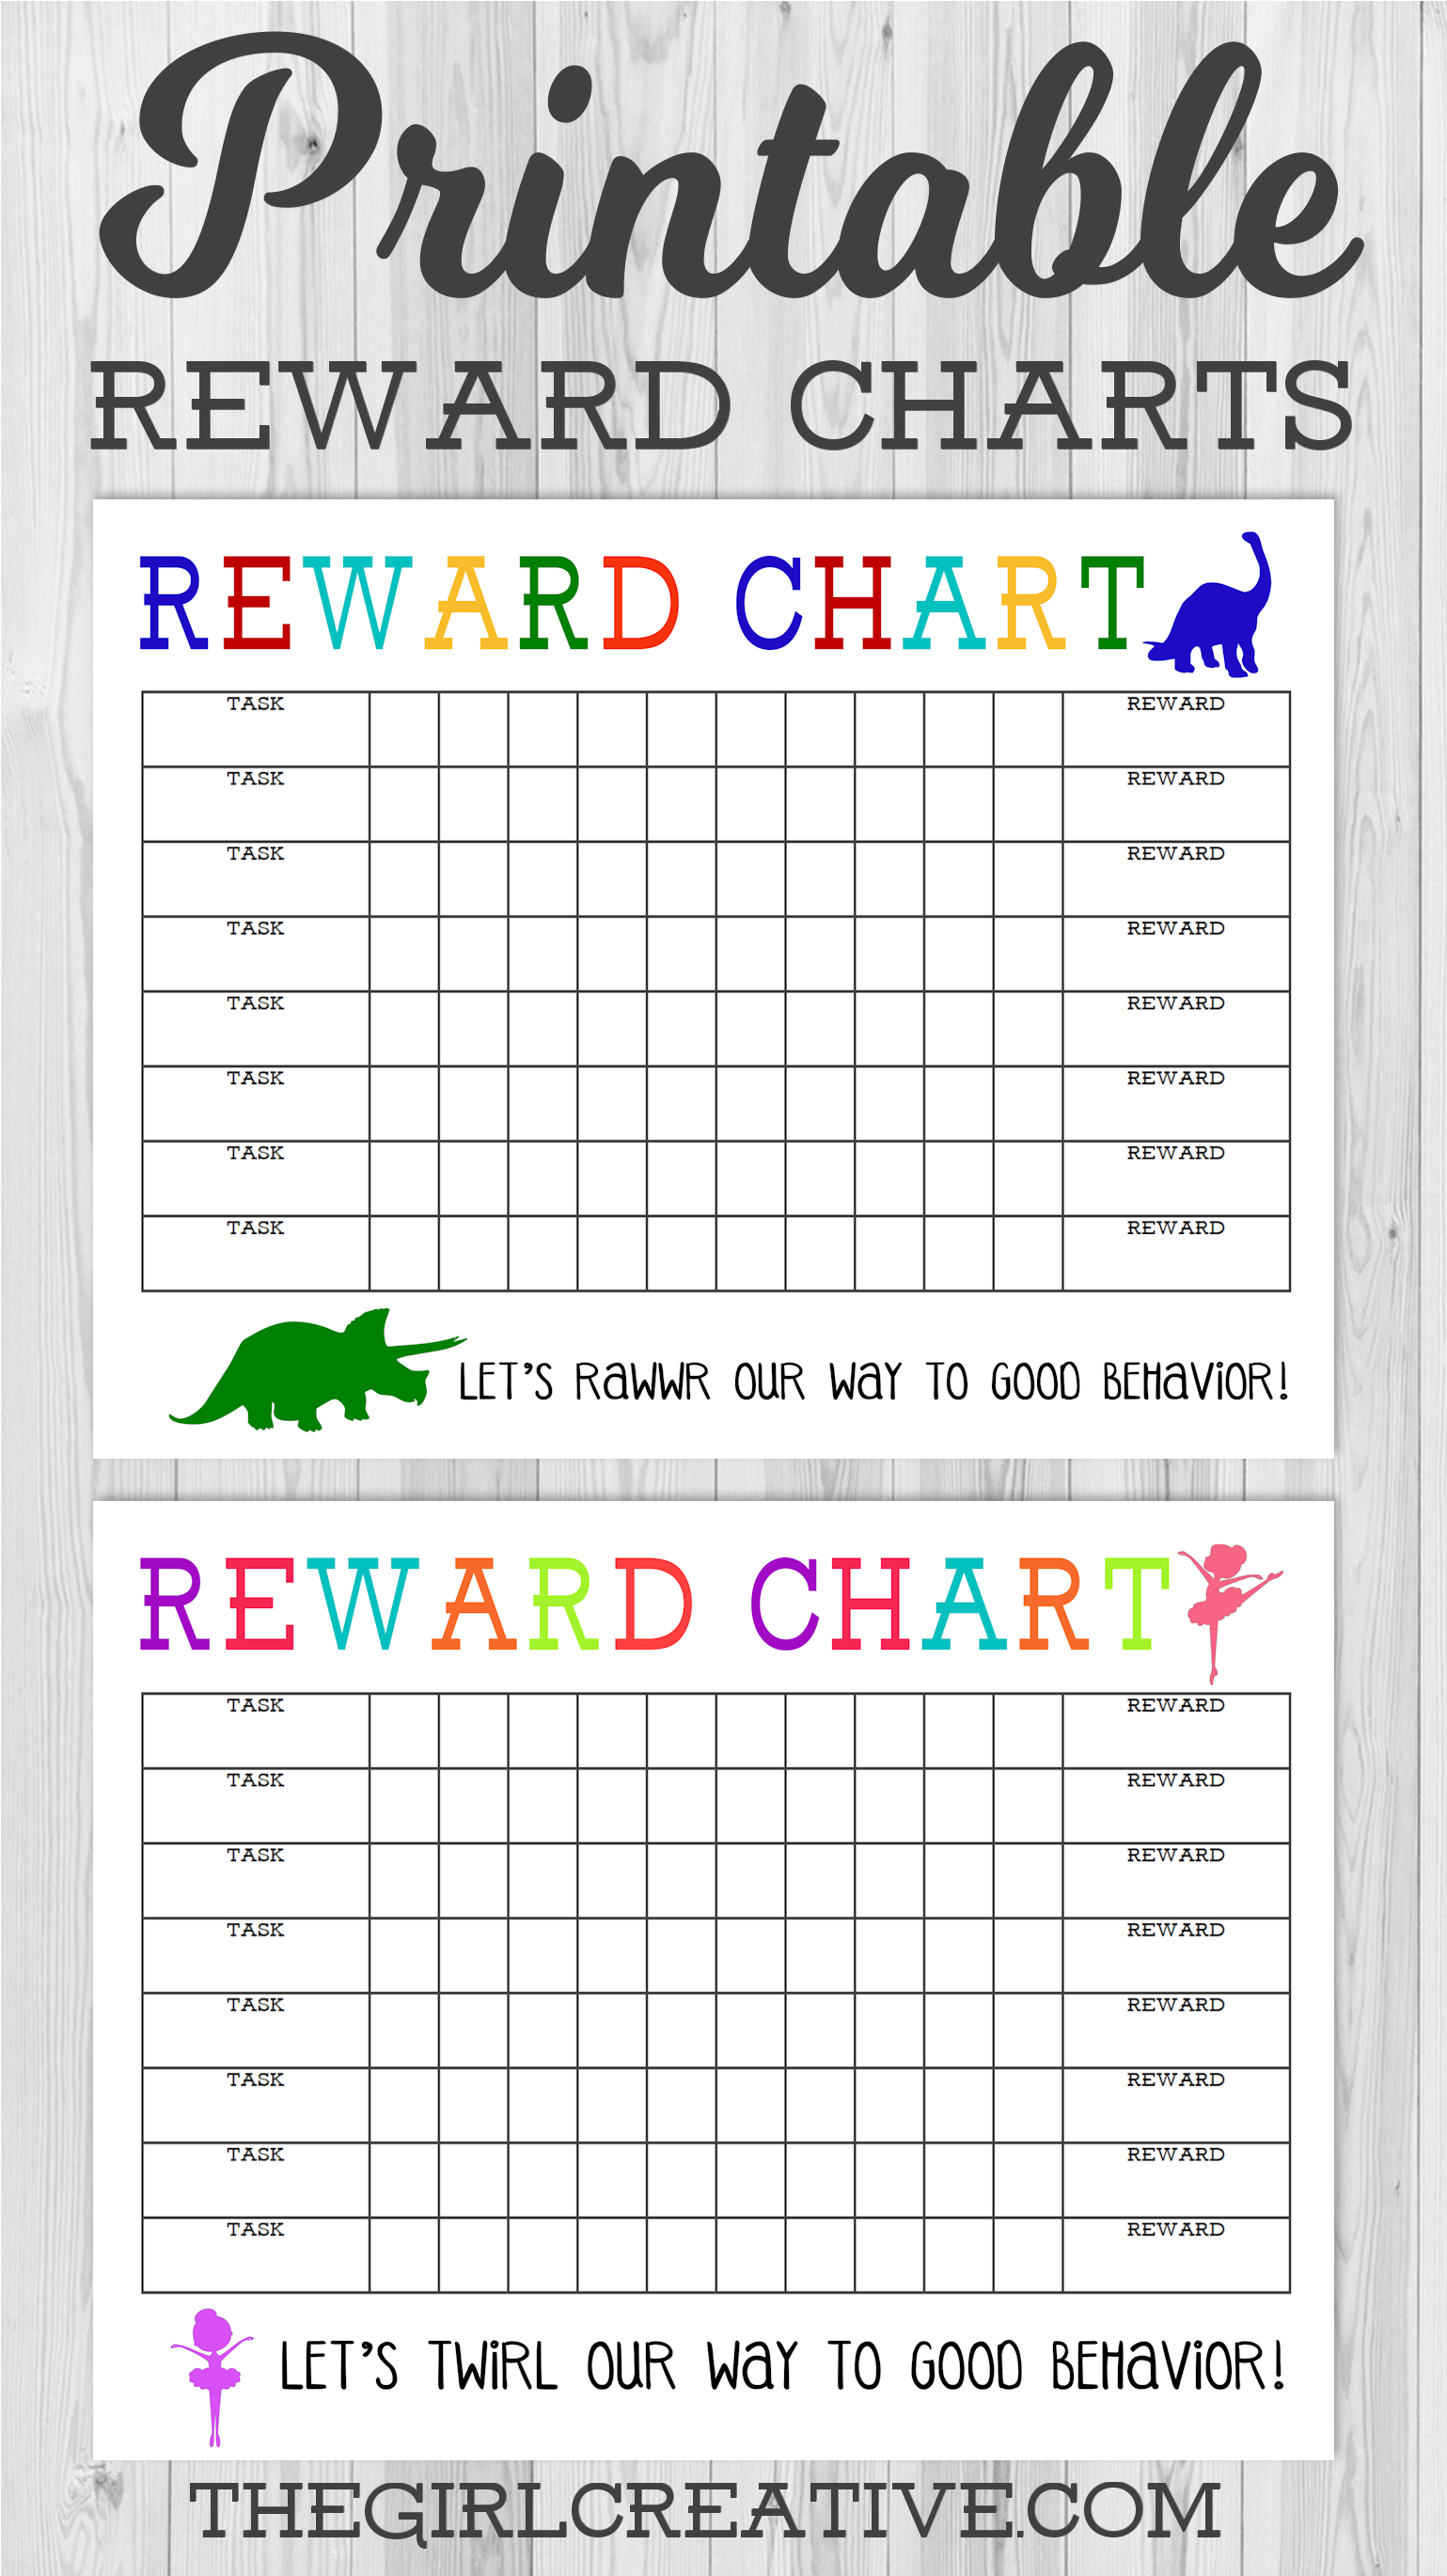 Printable Reward Chart - The Girl Creative - Free Printable Charts For Kids